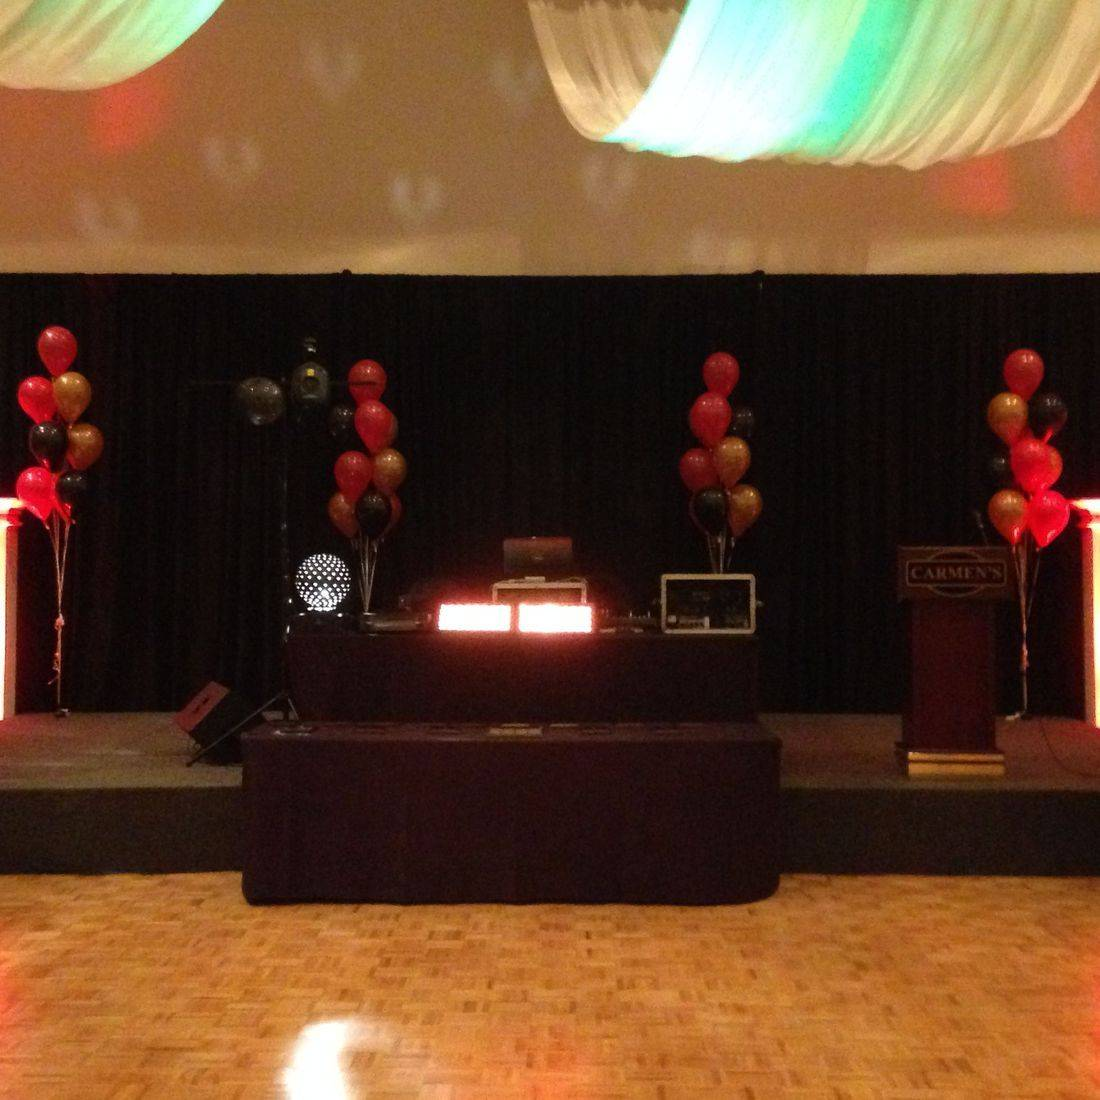 Mr. Productions DJ Service deejaying the Mcmaster University Fireball at Carmens Banquet Hall in Hamilton.